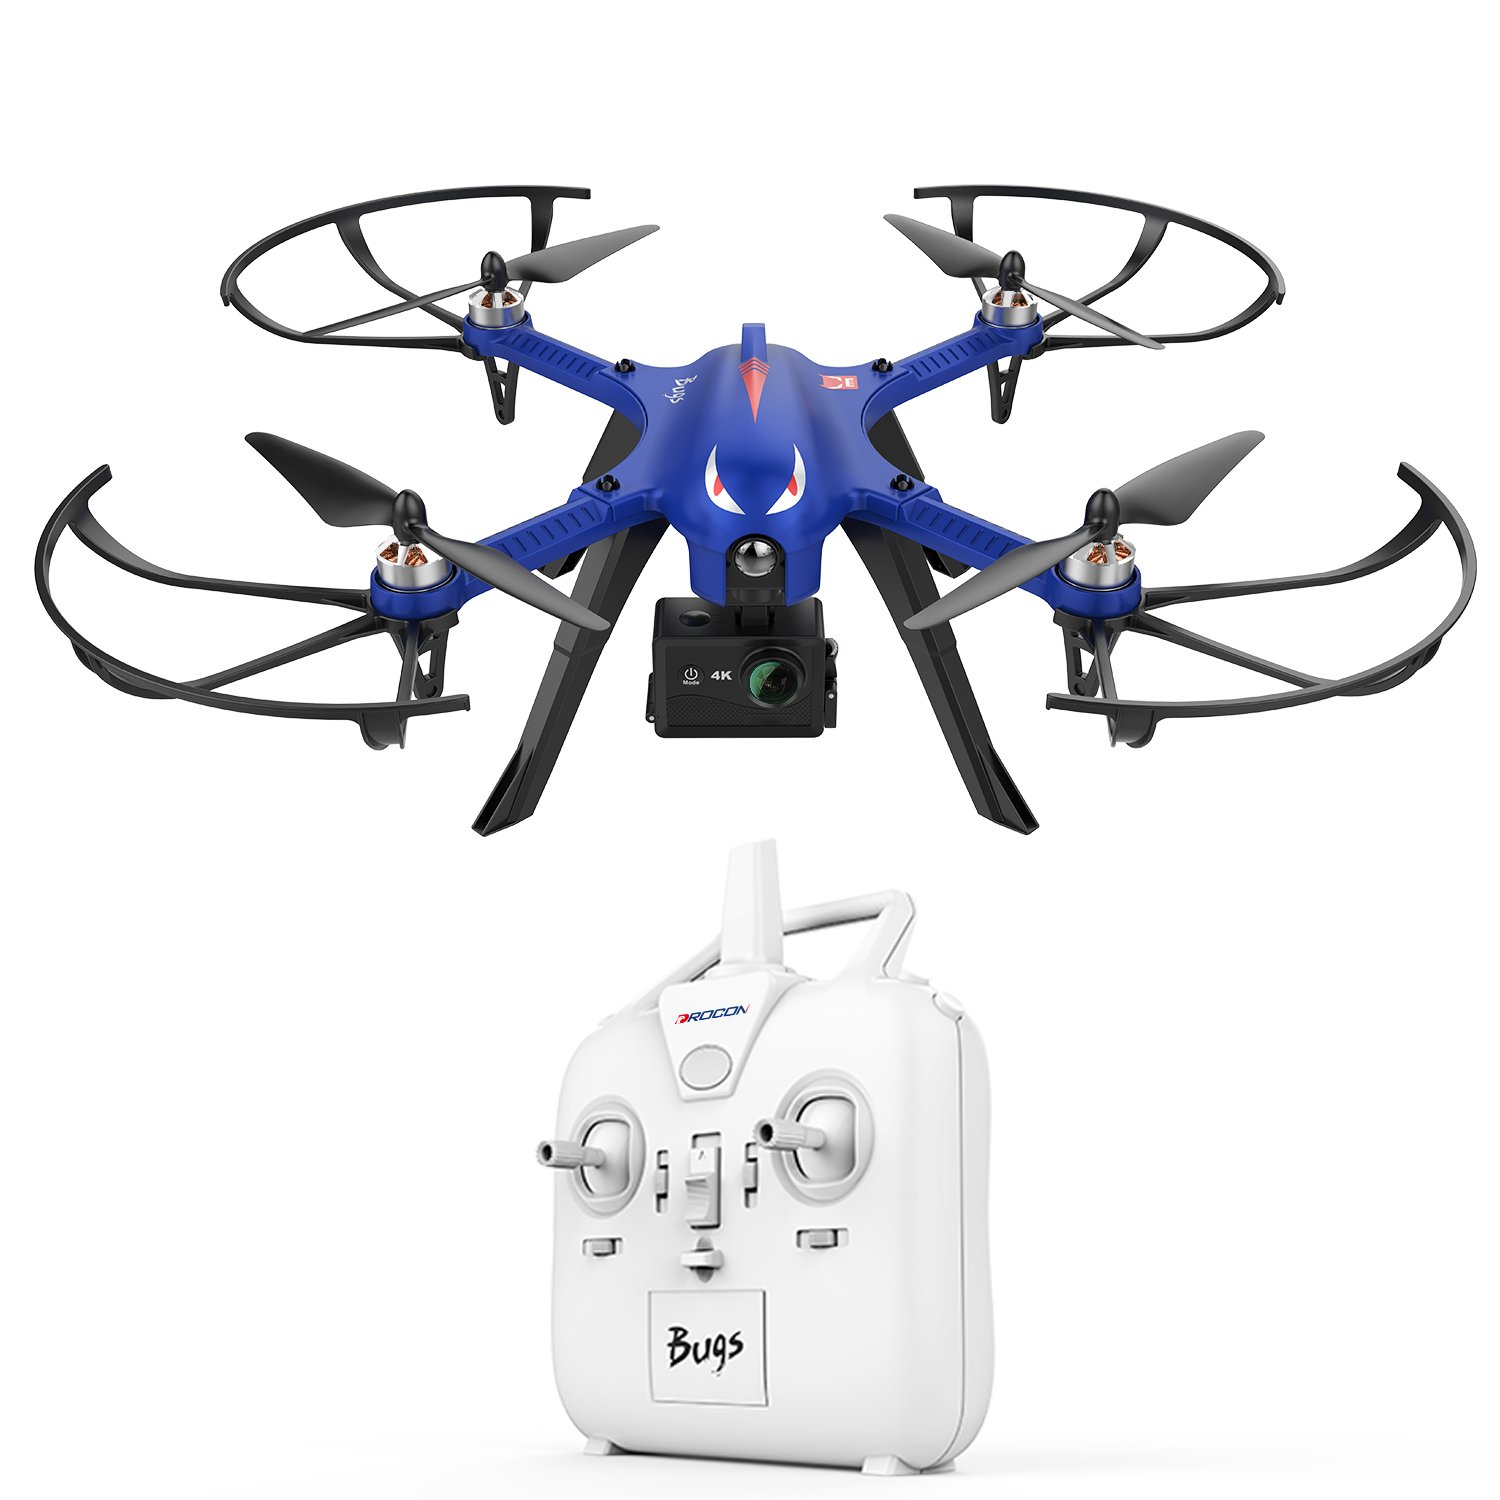 DROCON Bugs 3 Powerful Brushless Motor Quadcopter Drone for Adults and Hobbyilists, High Speed Flying Gopro Drone, Suport Gopro HD Camera 4K Camera, 18Min Flying Time  300 Meters Long Control Range